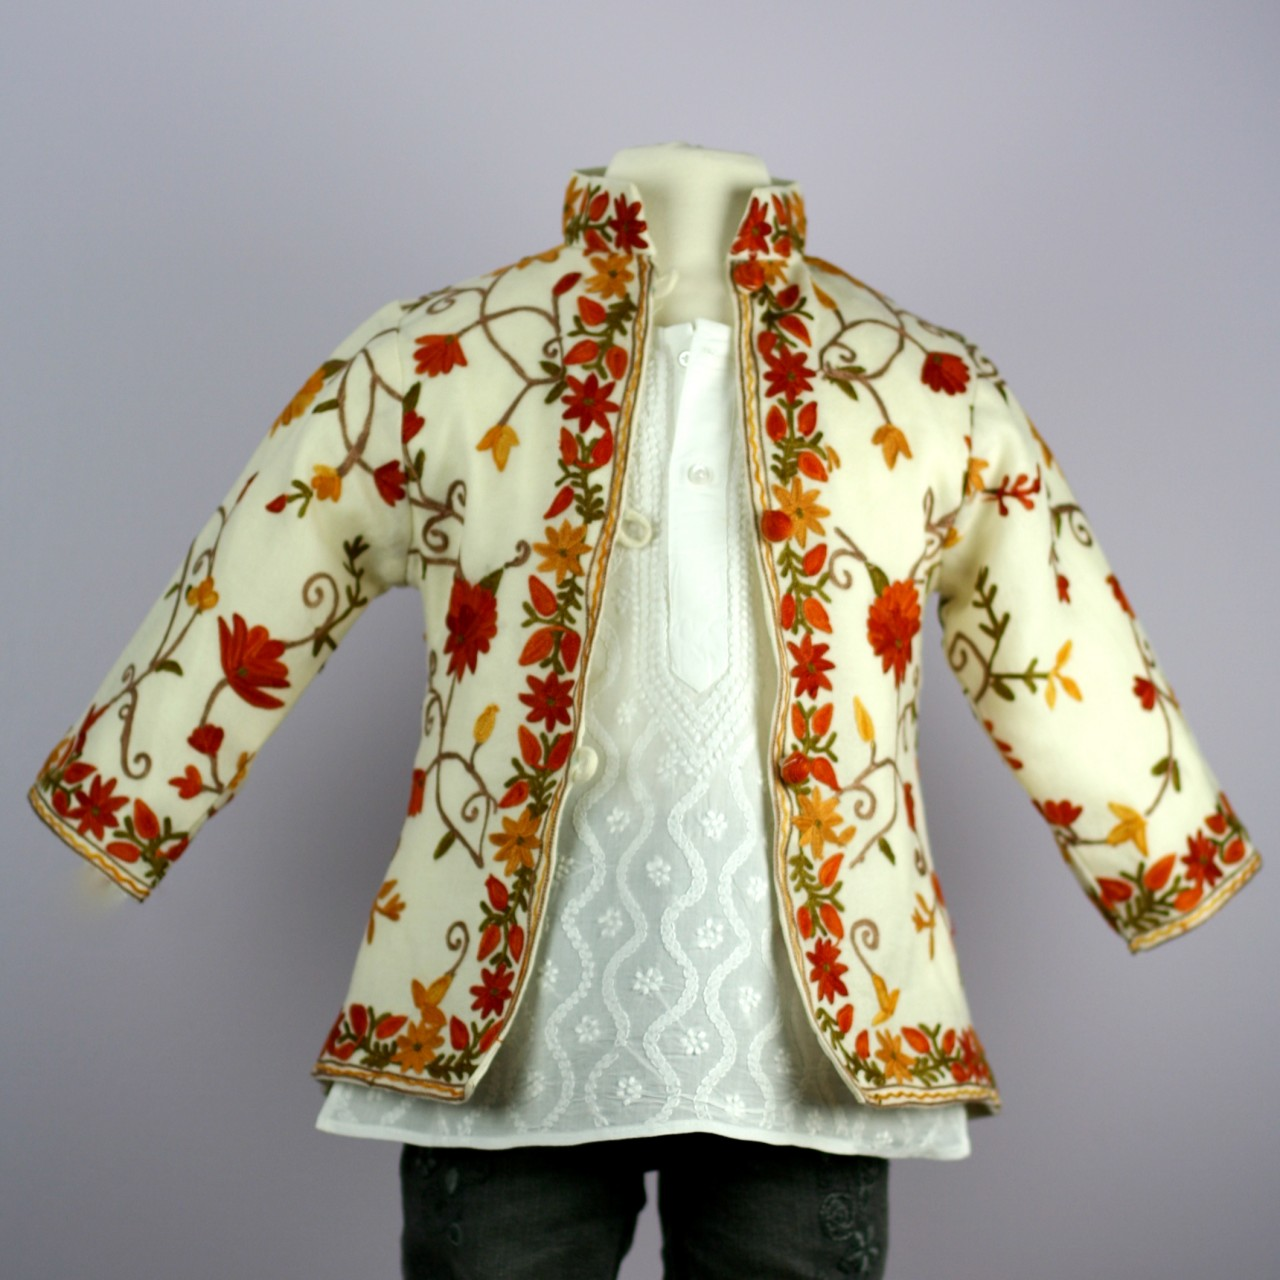 Kashmir Embroidered Jacket Free Embroidery Patterns